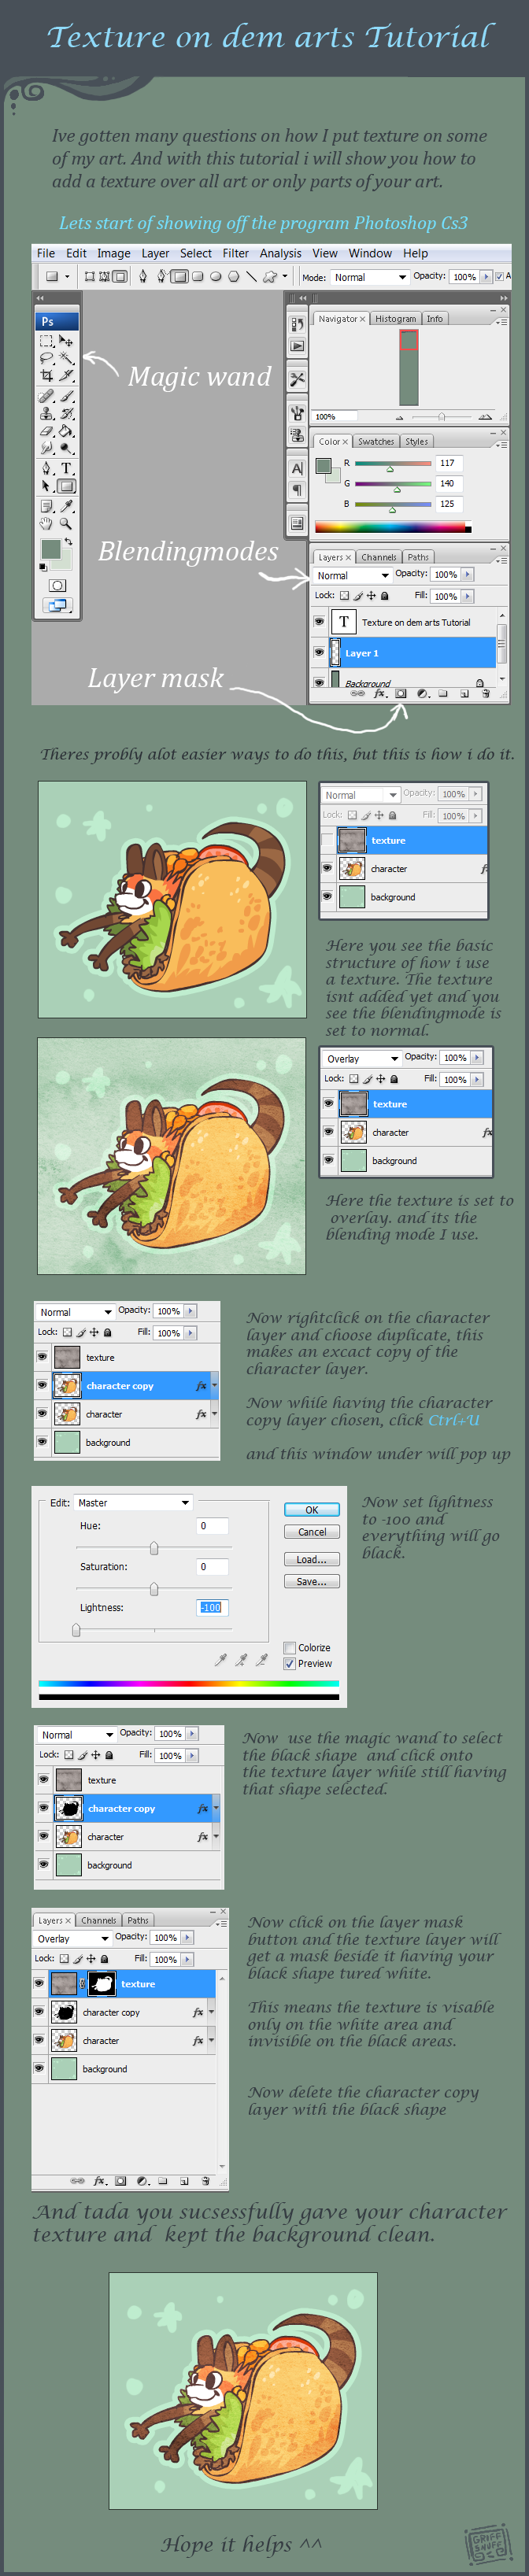 How to add texture to art tut by griffsnuff